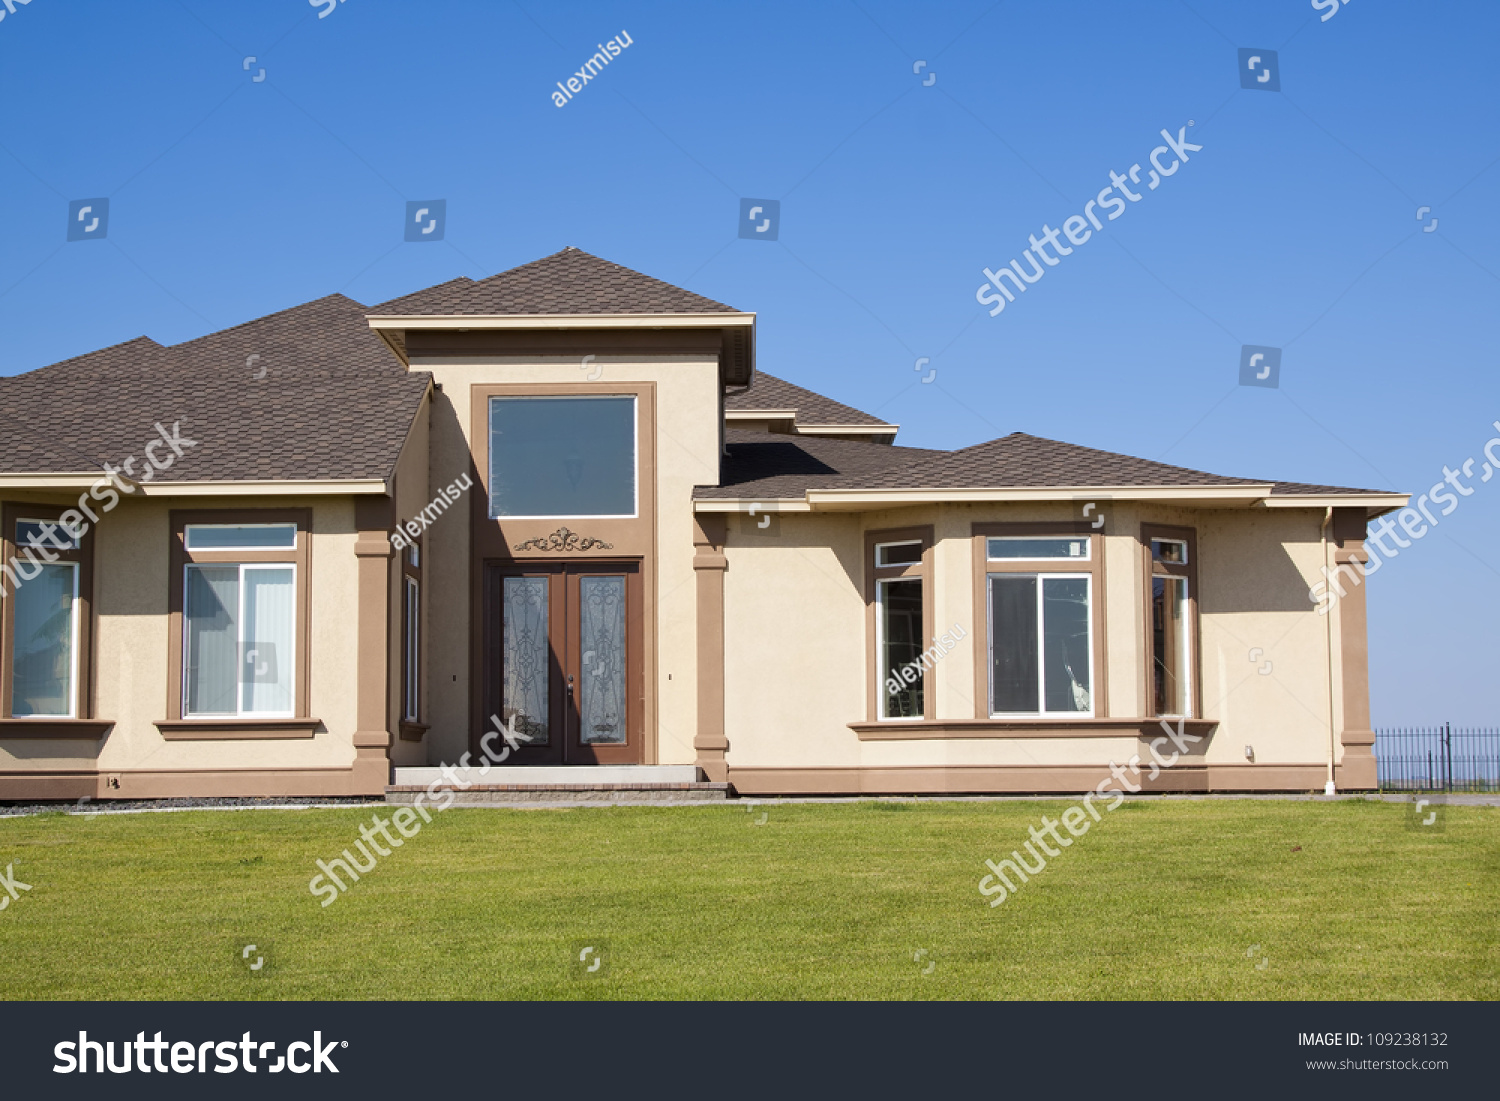 Modern House Front ntrance With Green Grass nd Blue Sky Stock ... - ^